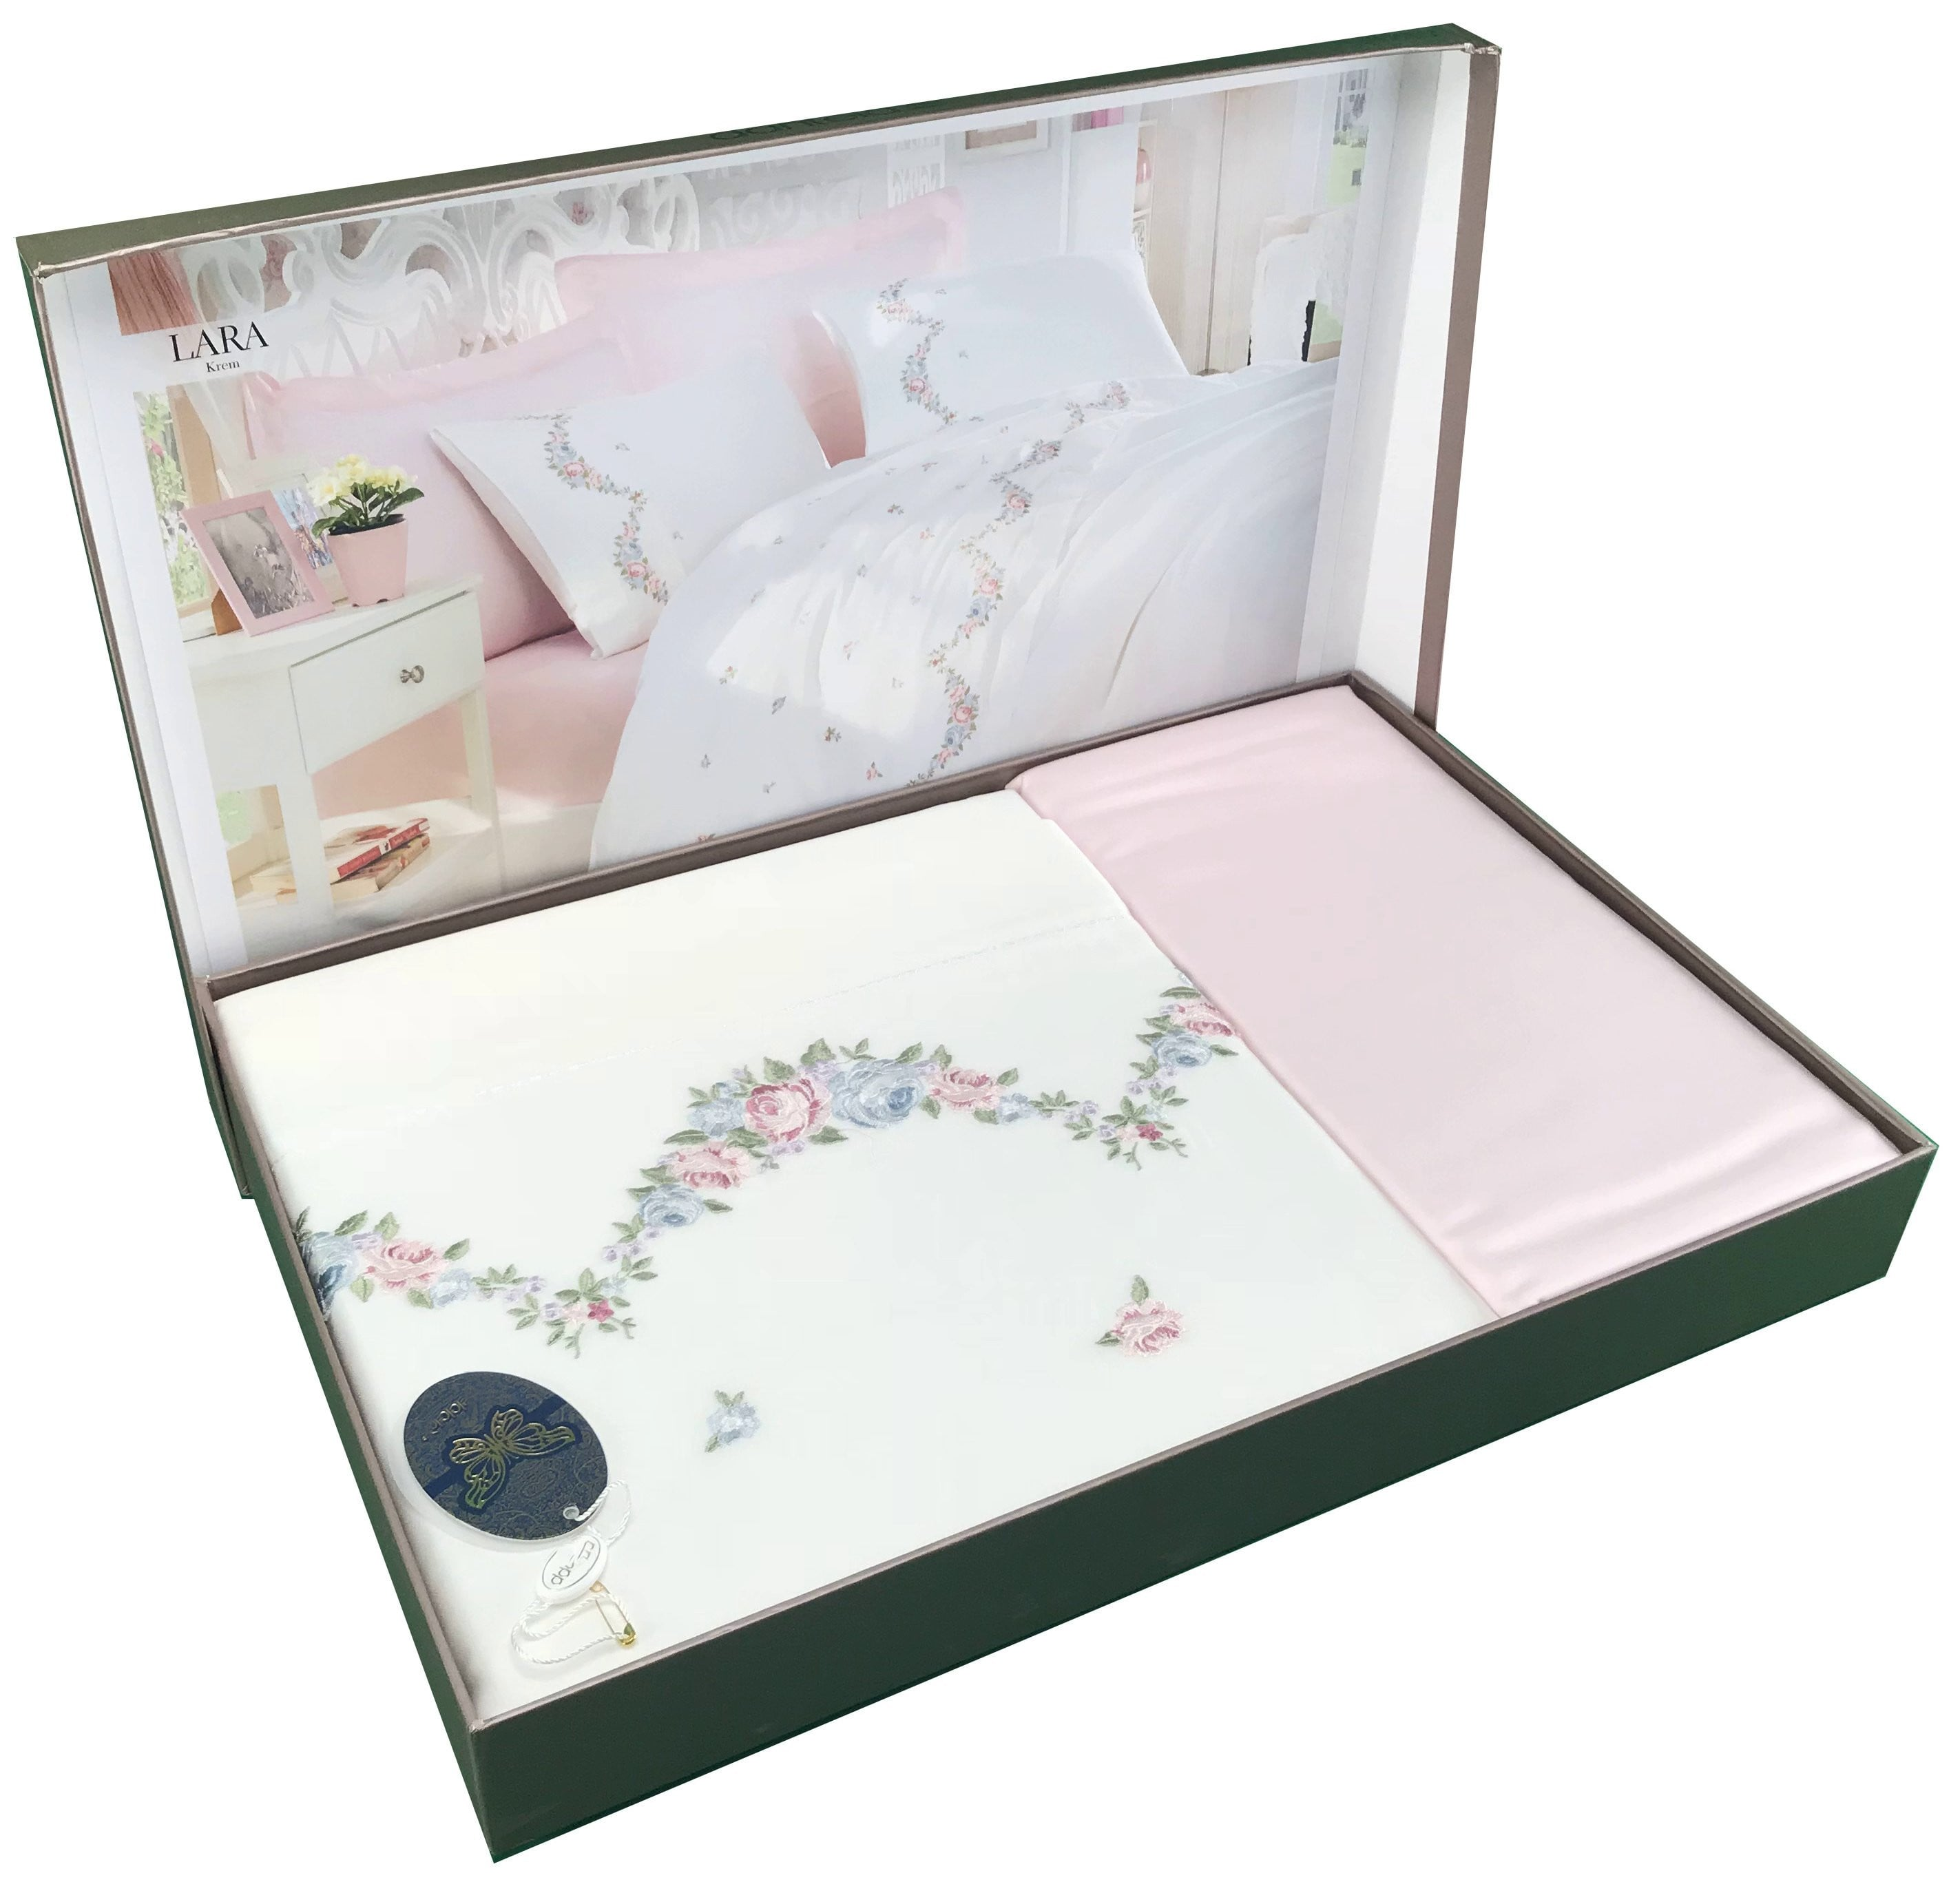 6 Pieces Embroidery Floral Lining Bedding Set